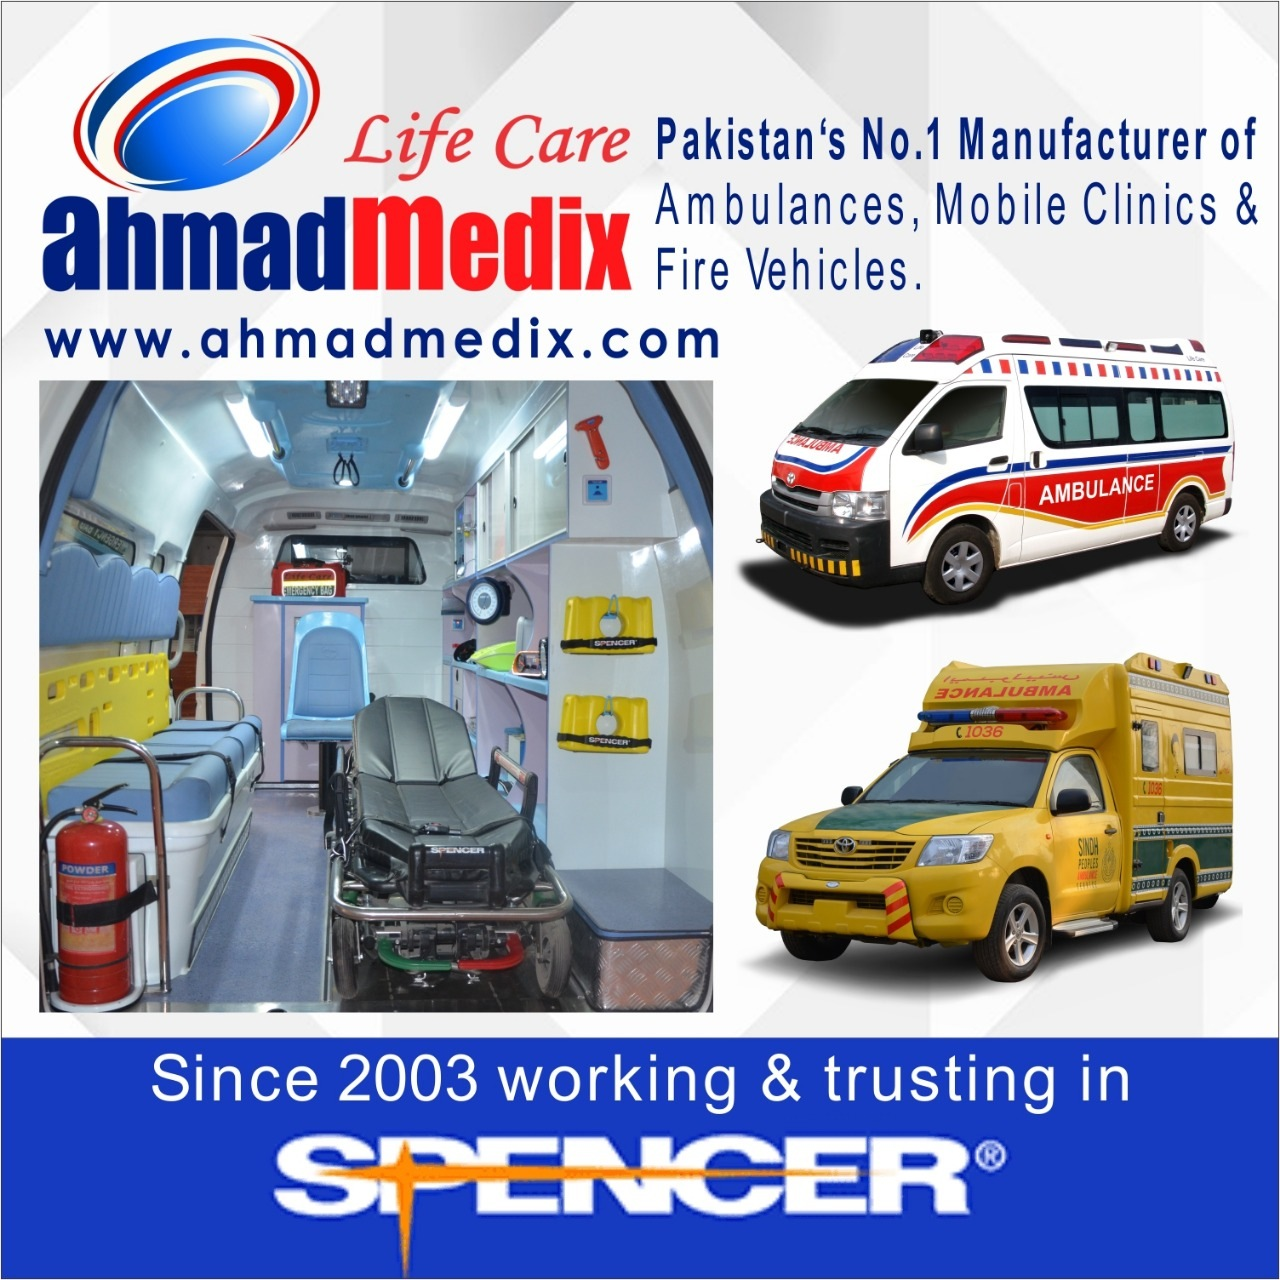 SPENCER PARTNER – AHMAD MEDIX